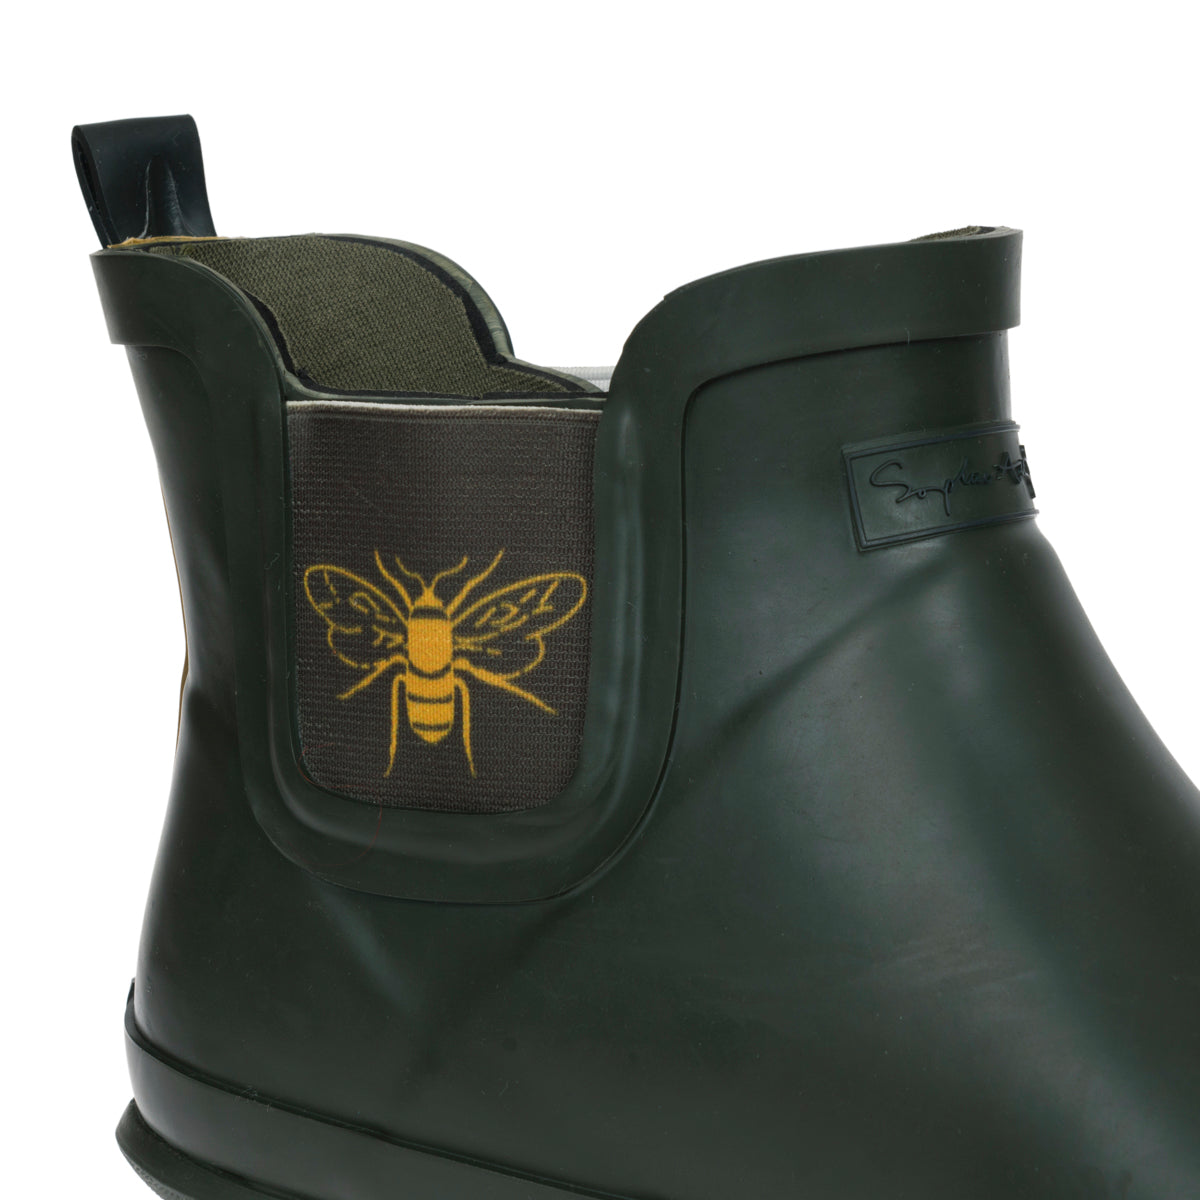 Sophie Allport Bees Ankle Wellies Detailing